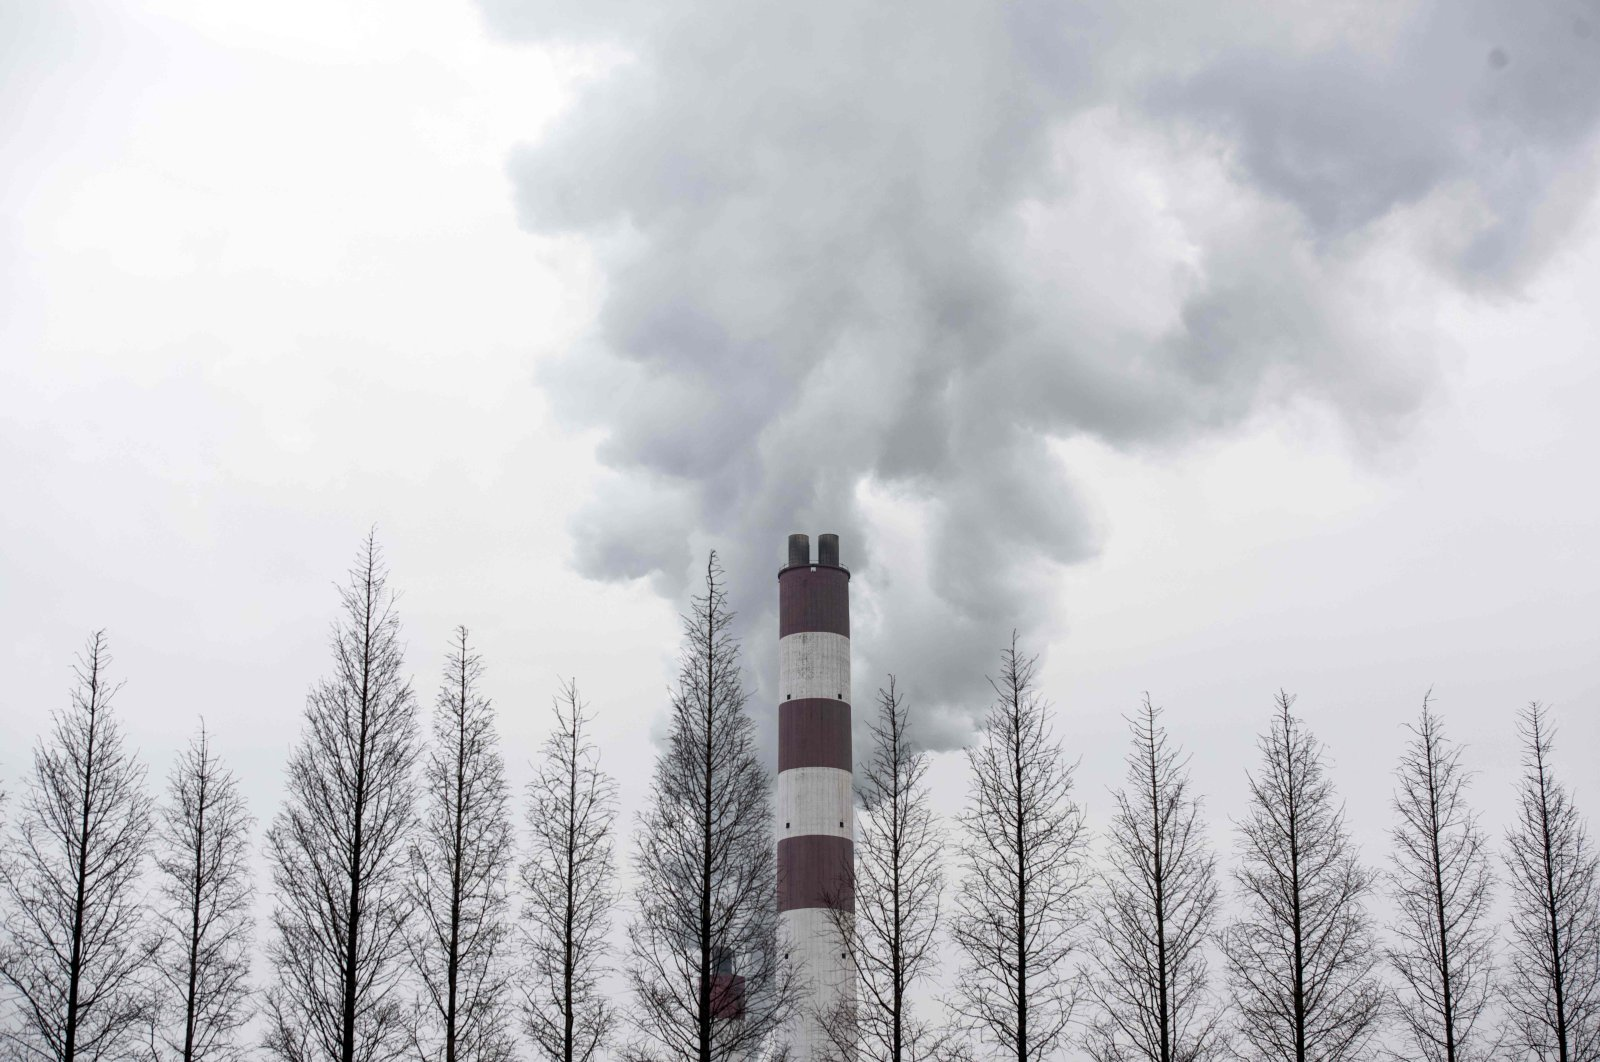 This file photo taken on March 22, 2016, shows smoke billowing from a chimney of the Shanghai Waigaoqiao Power Generator Company coal power plant in Shanghai, China. (AFP Photo)